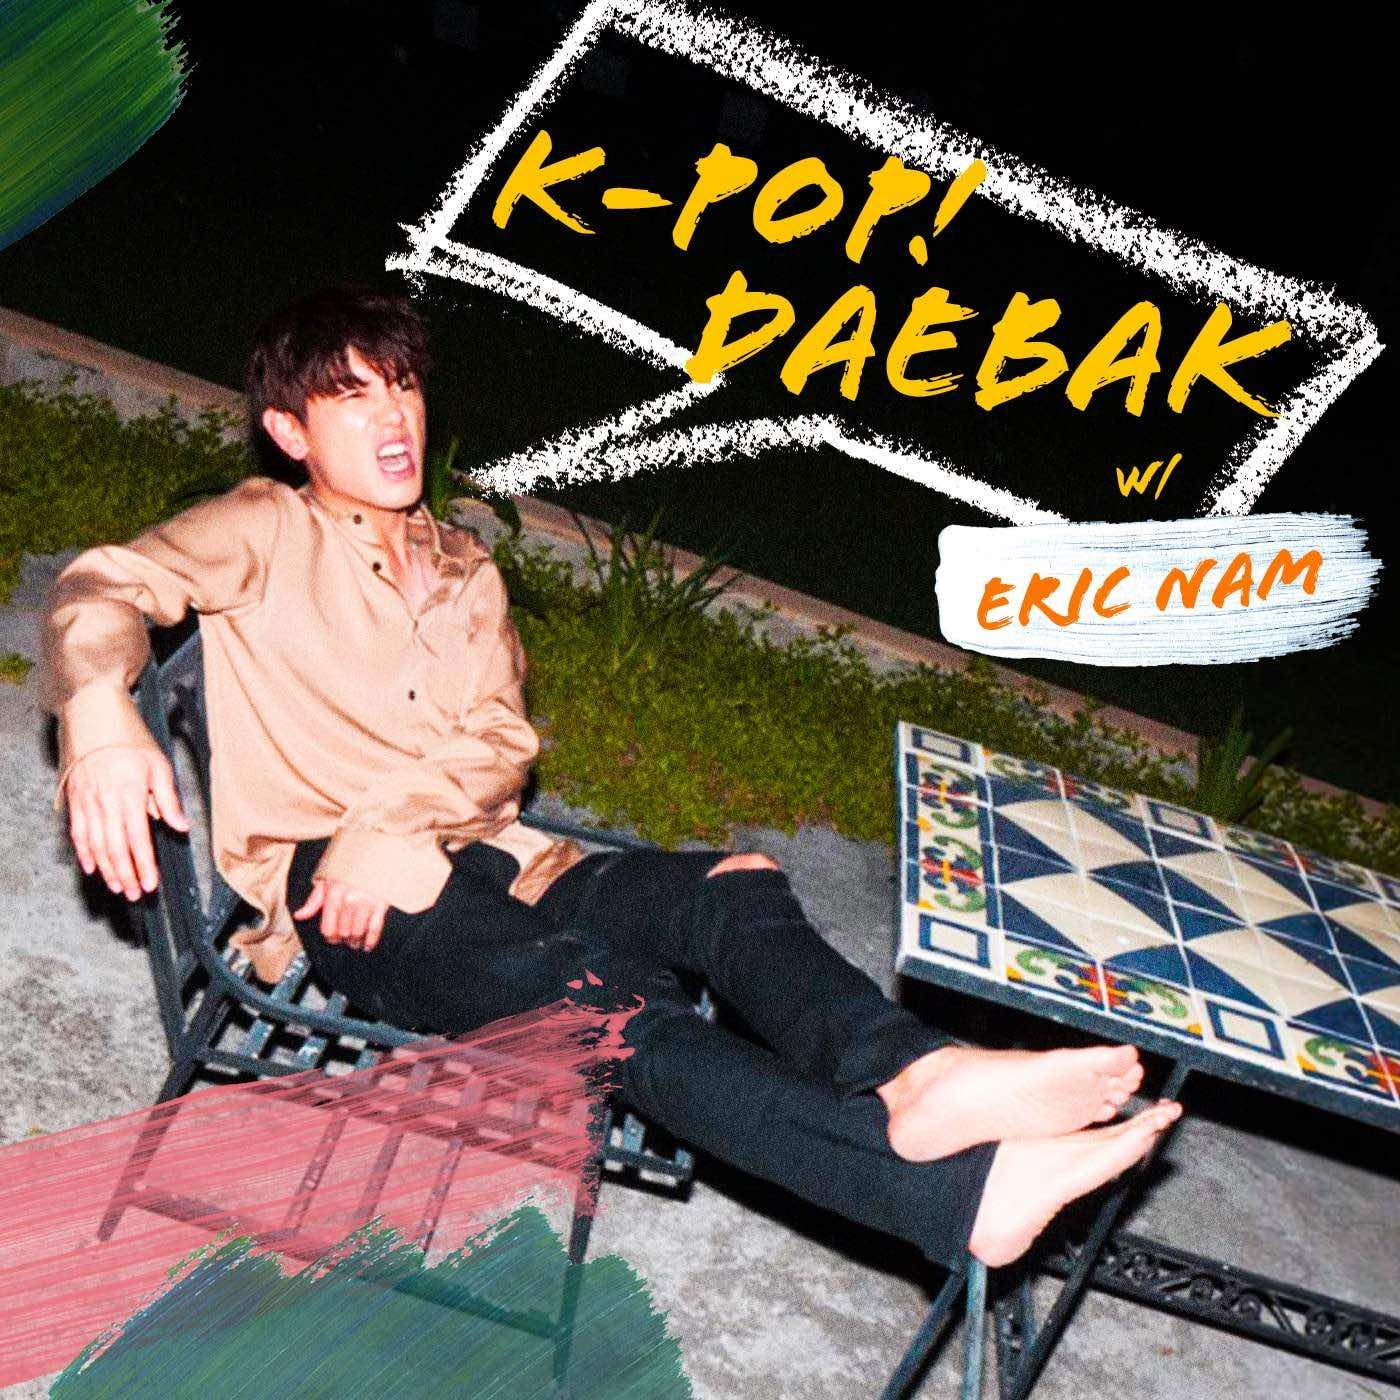 Listen to his podcast HERE:  K-Pop Daebak with Eric Nam